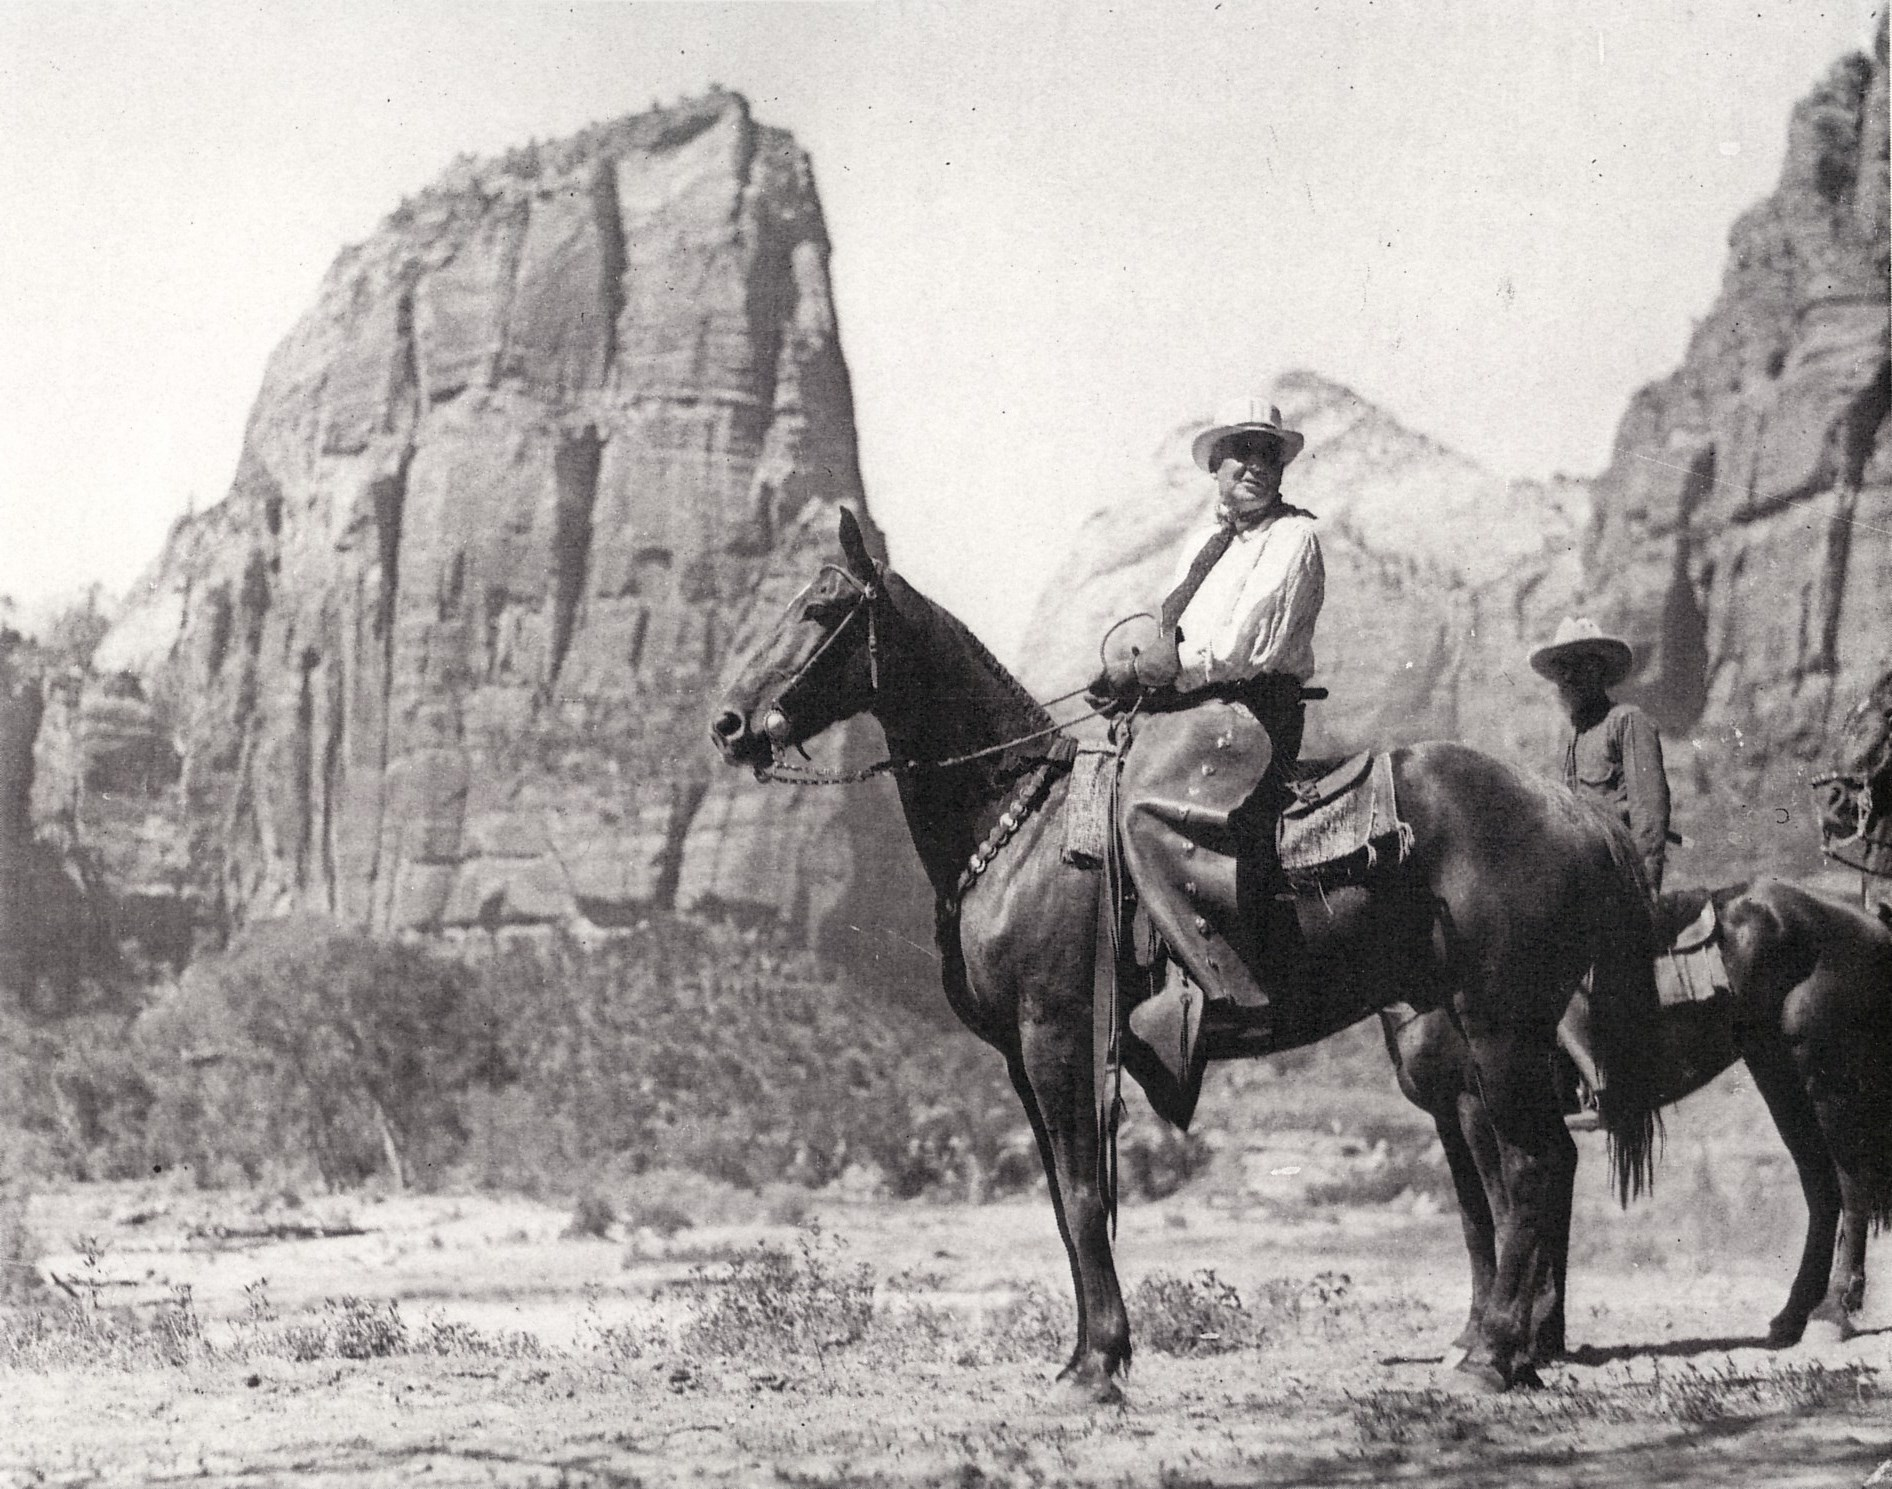 President Harding on horseback in Zion National Park